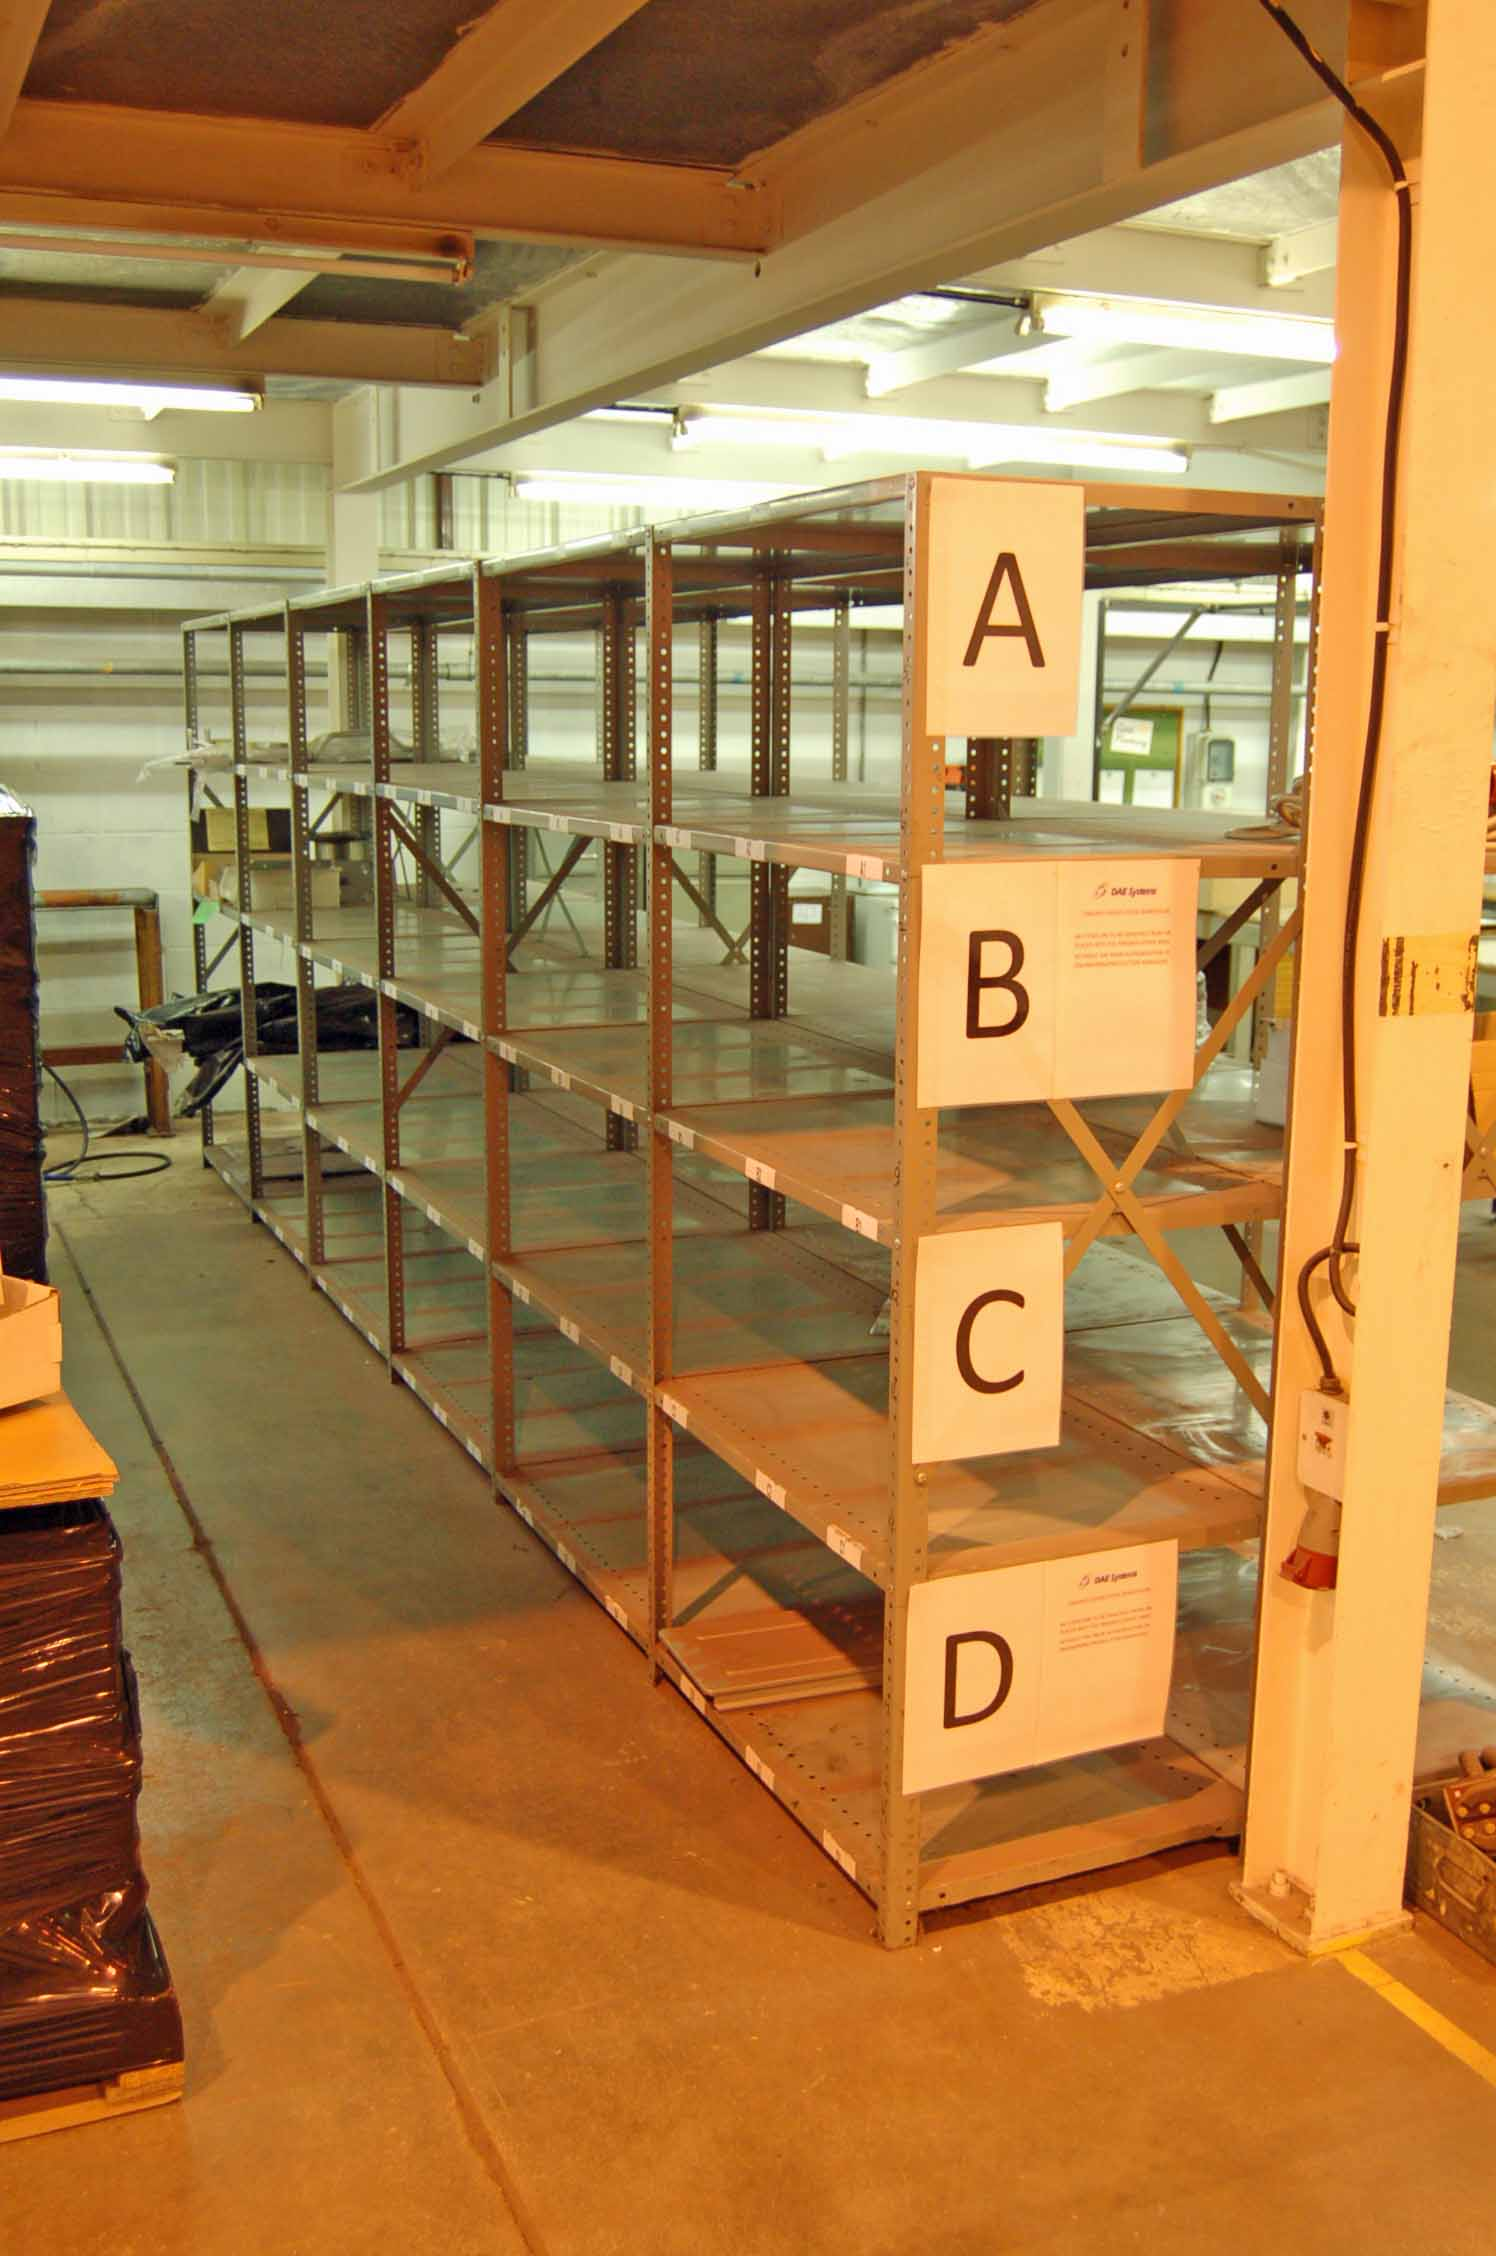 Lot 35 - 12 Bays of 2m x 1m Bolt Together Steel Racking